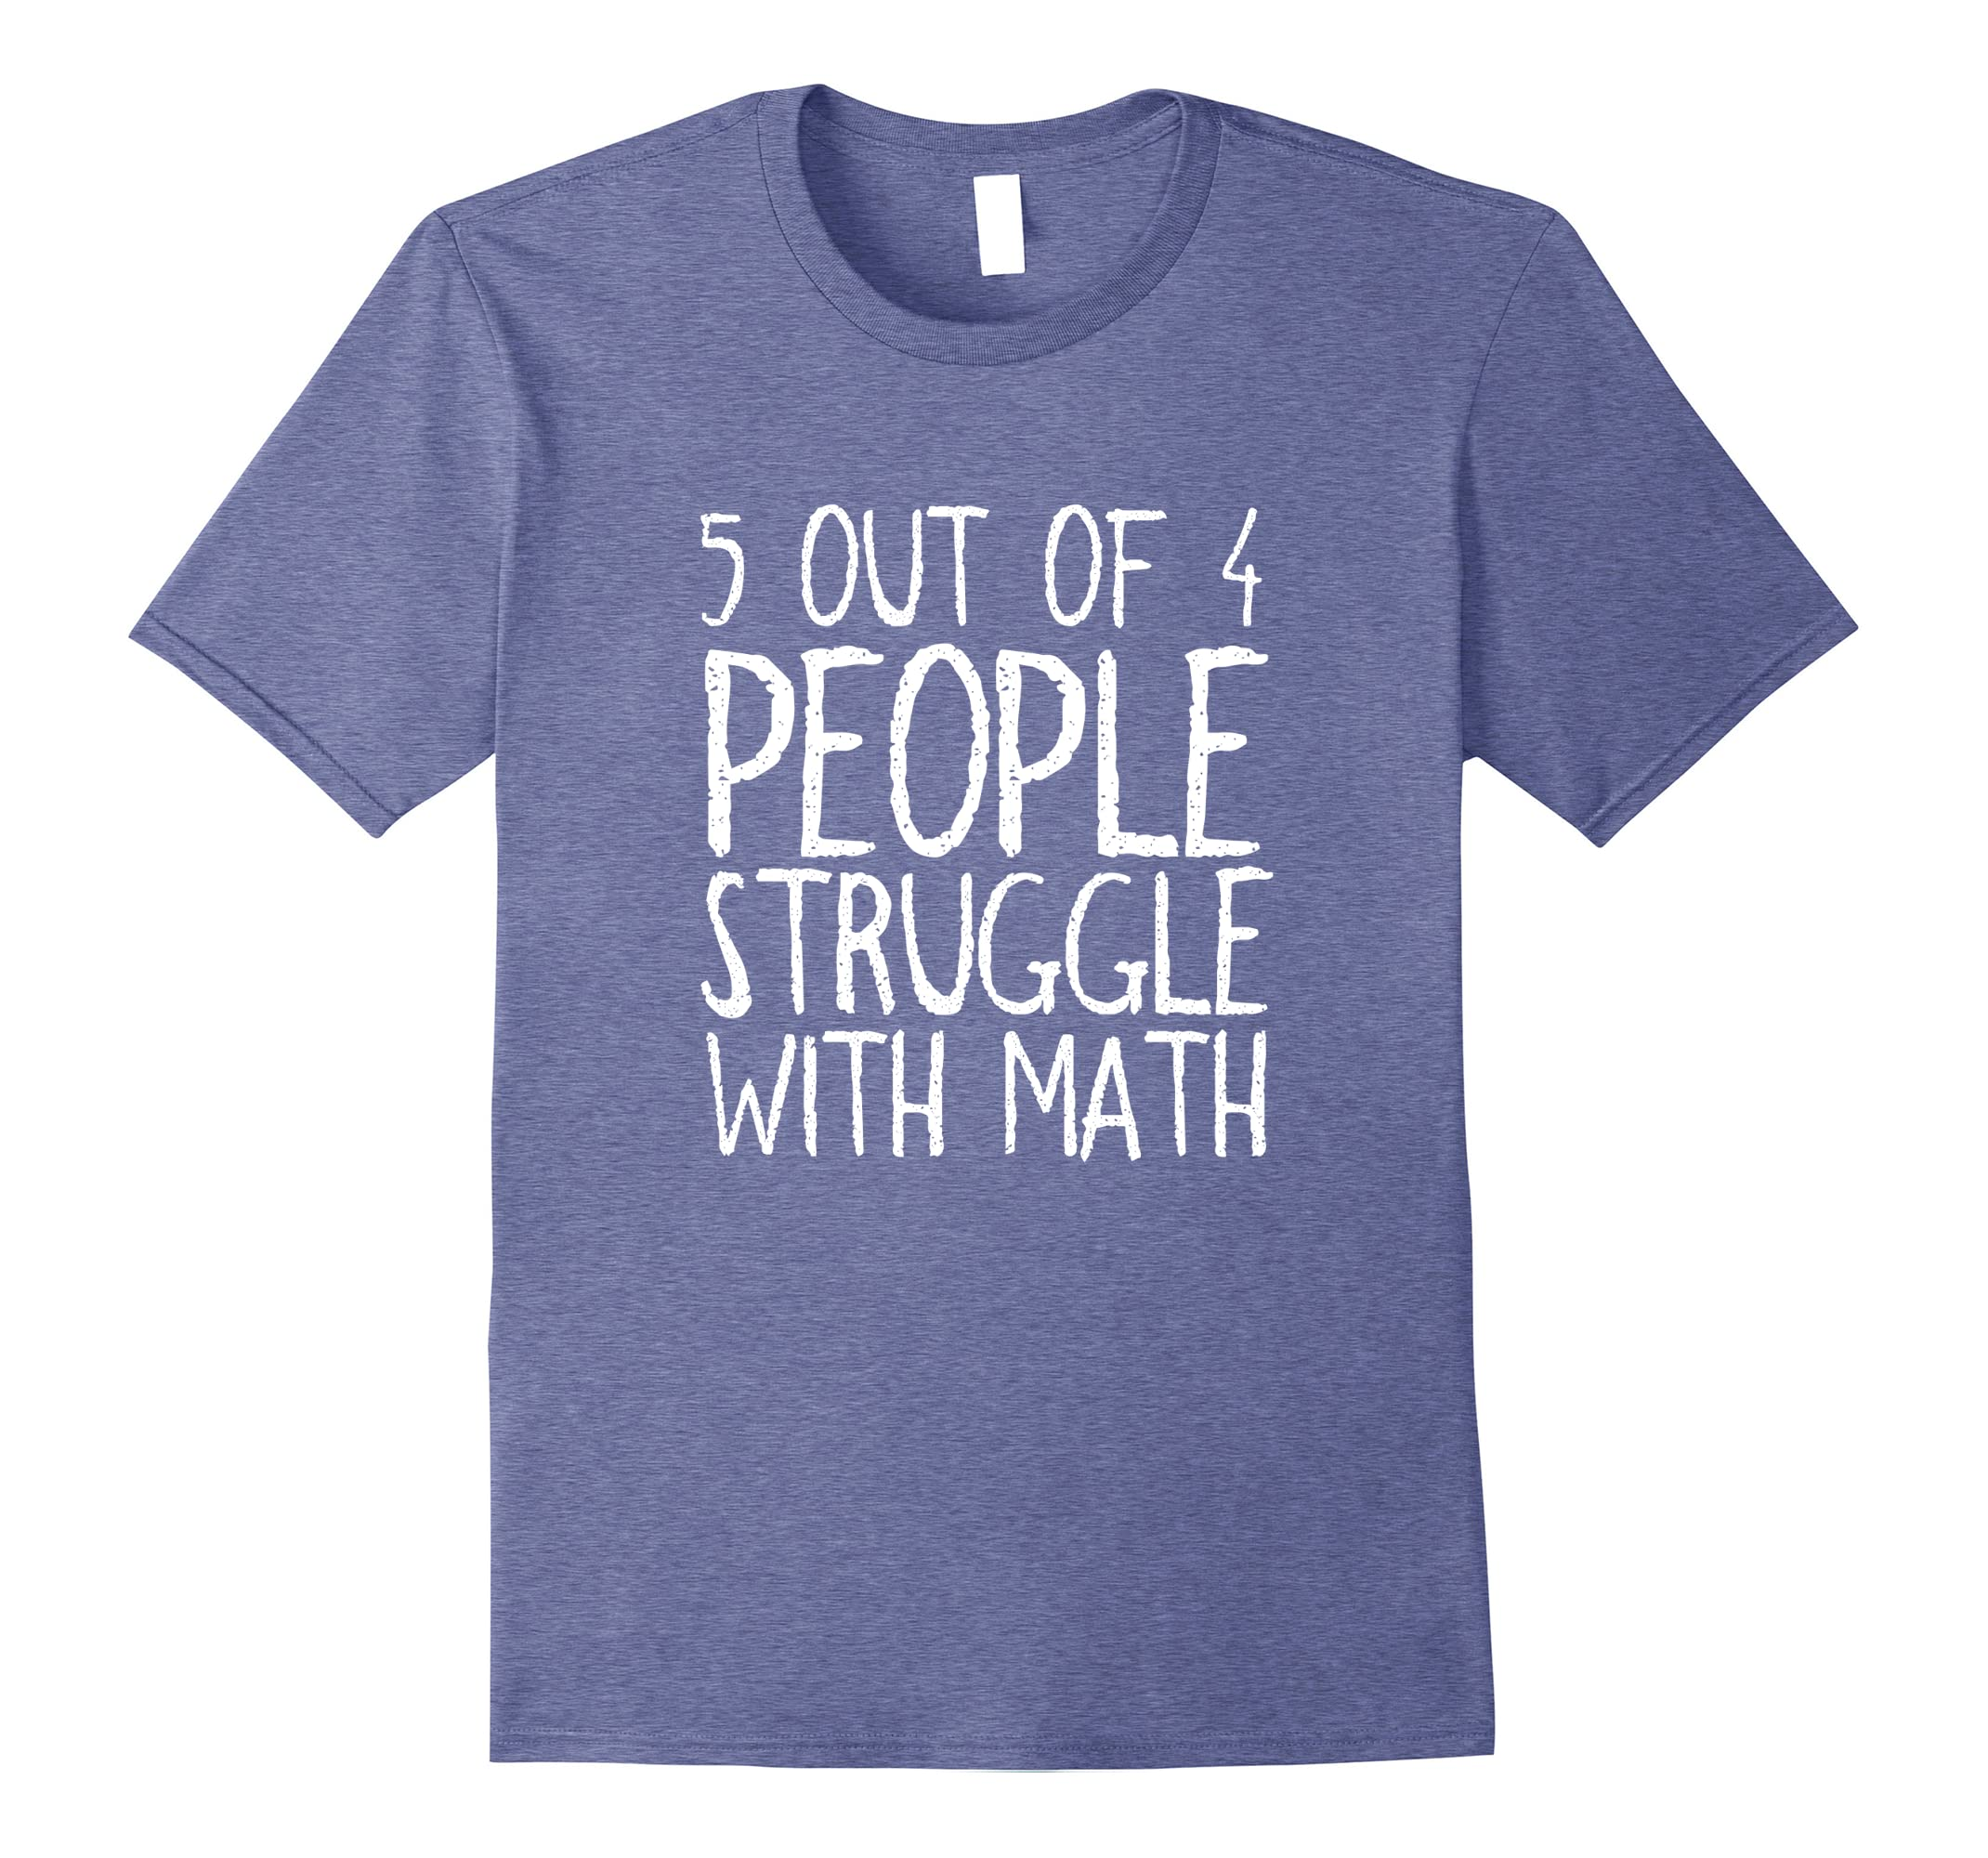 5 out of 4 People Struggle With Math T-shirt-ah my shirt one gift